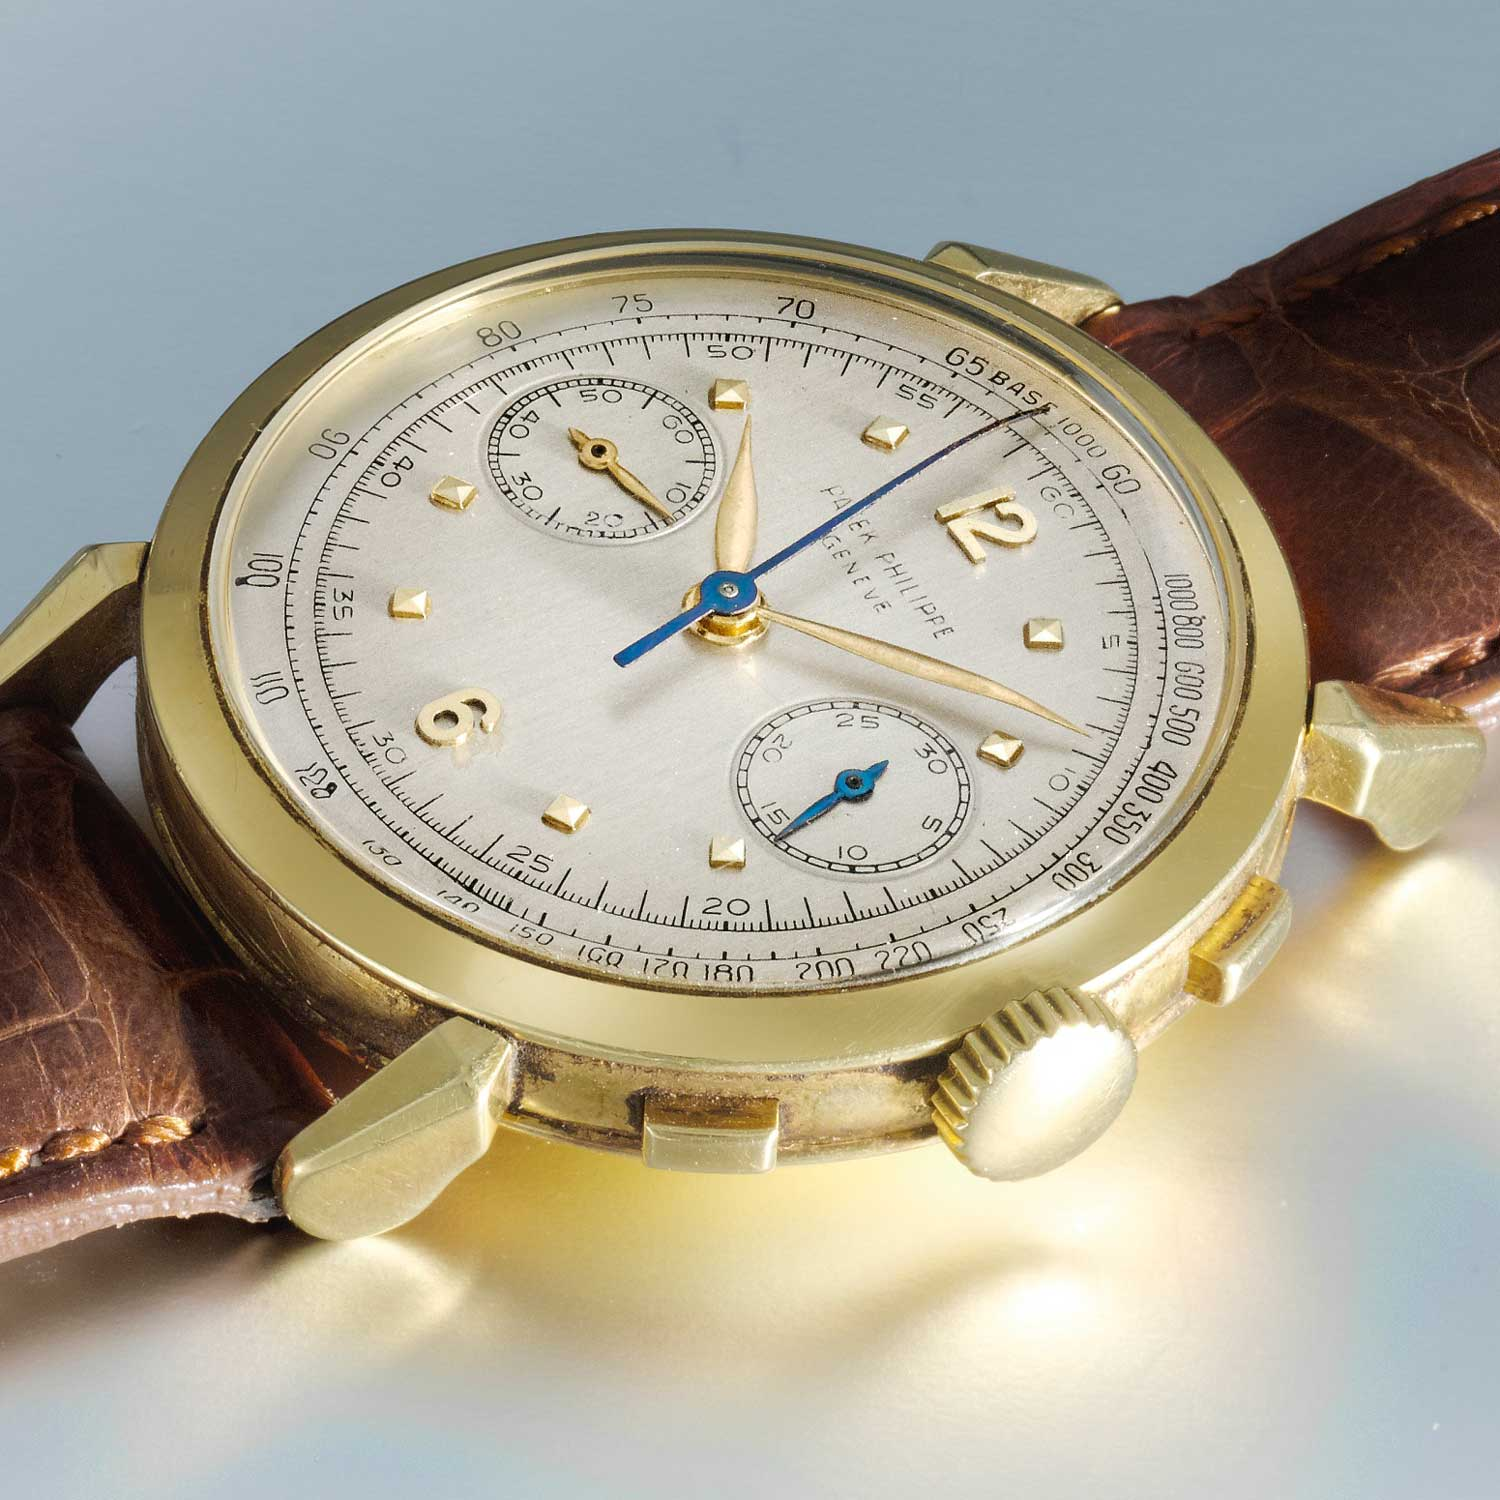 1956 Patek Philippe ref. 1579 gold chronograph with silvered dial, applied yellow gold Arabic numerals and square indexes (Image: Sothebys.com)